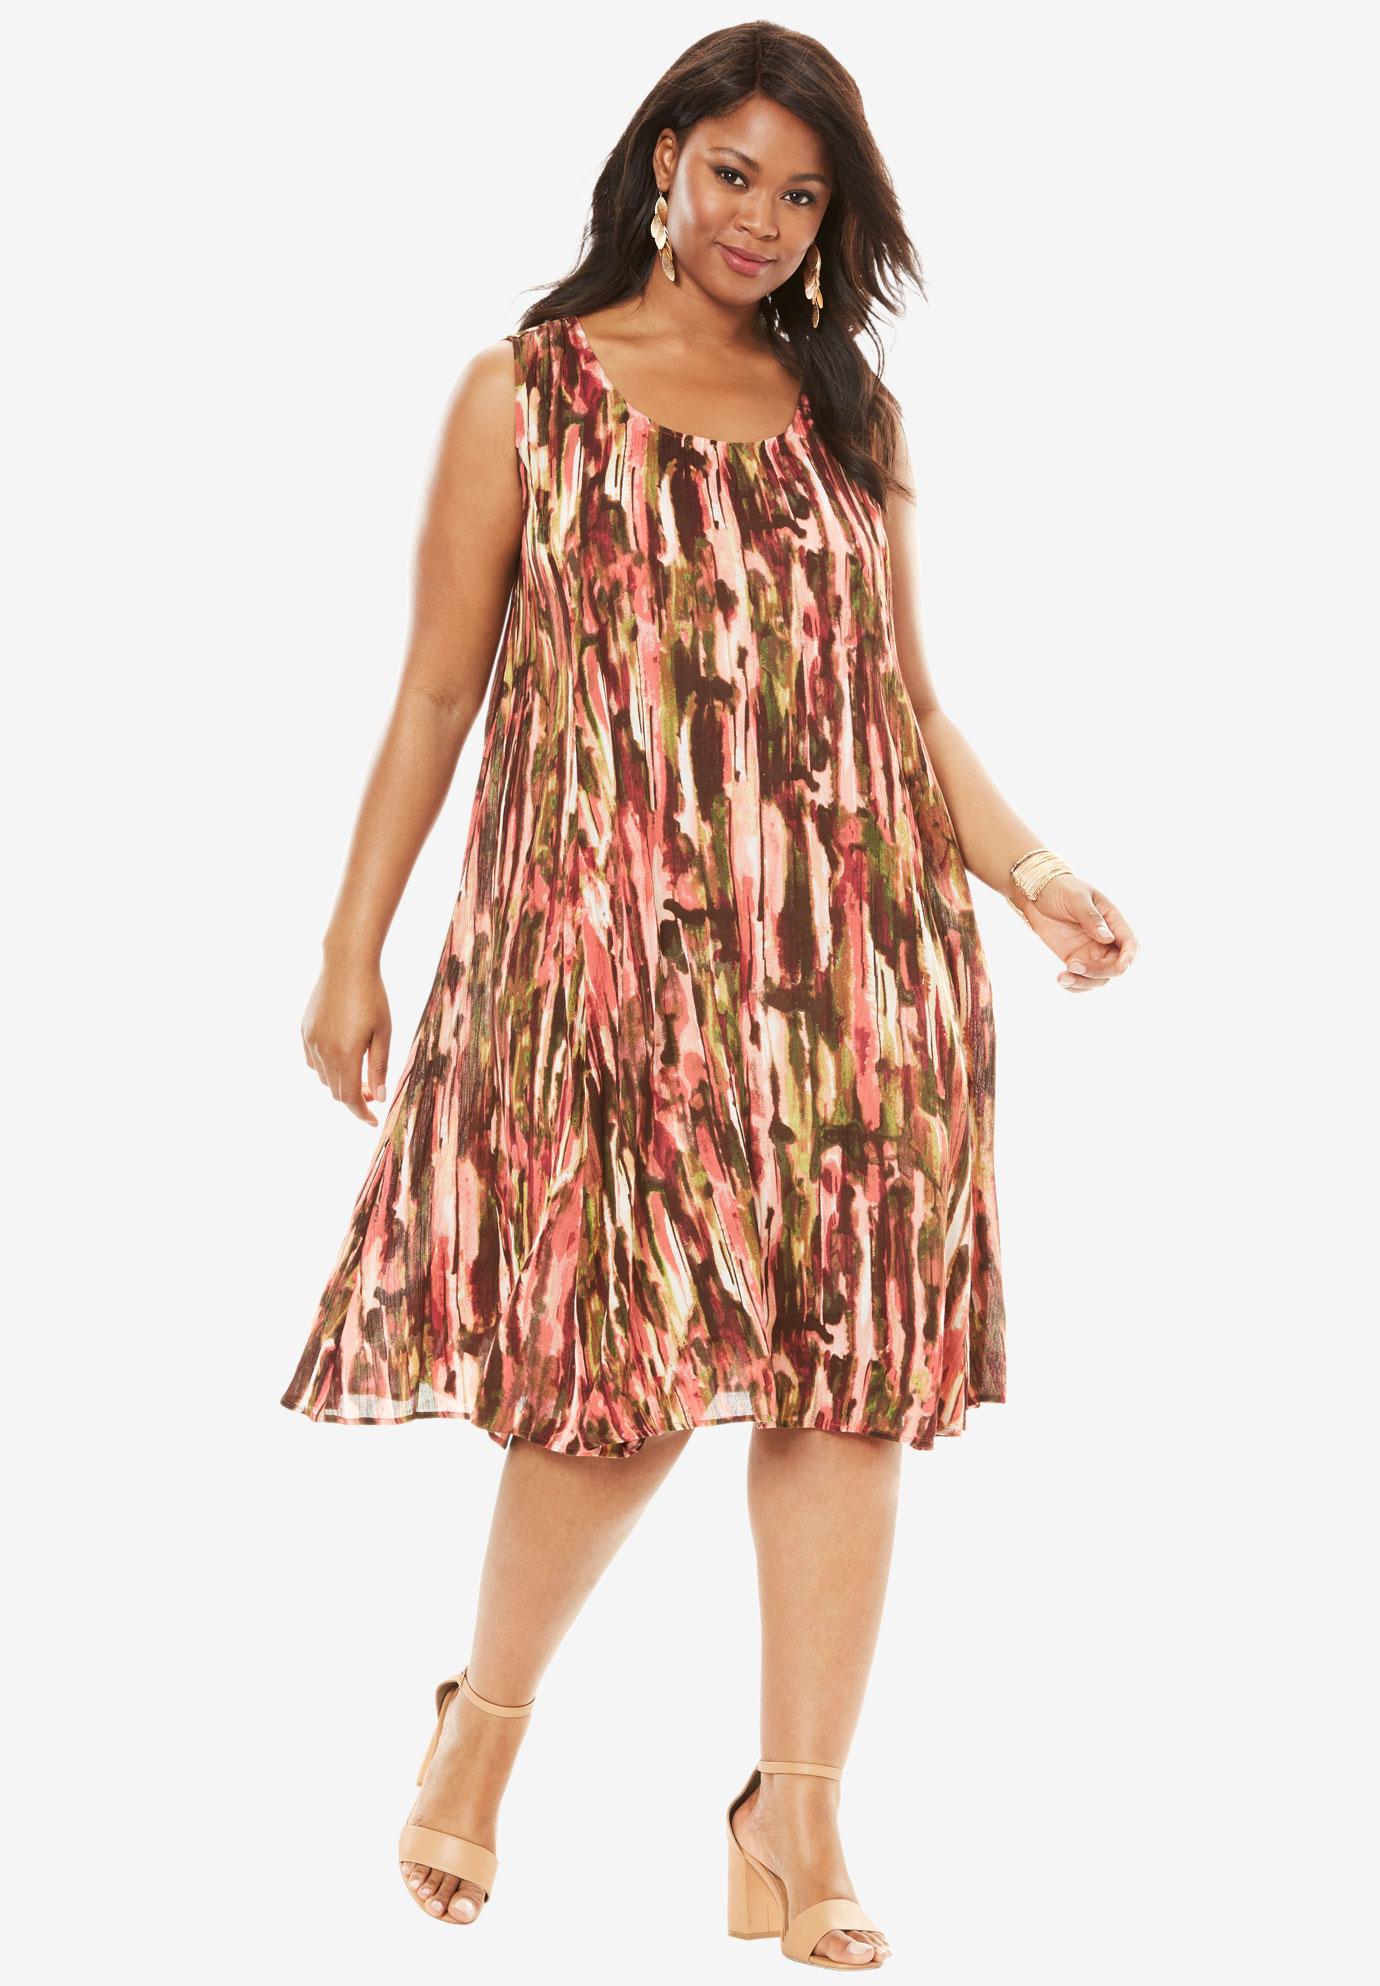 Plus Size Casual Wear Dresses